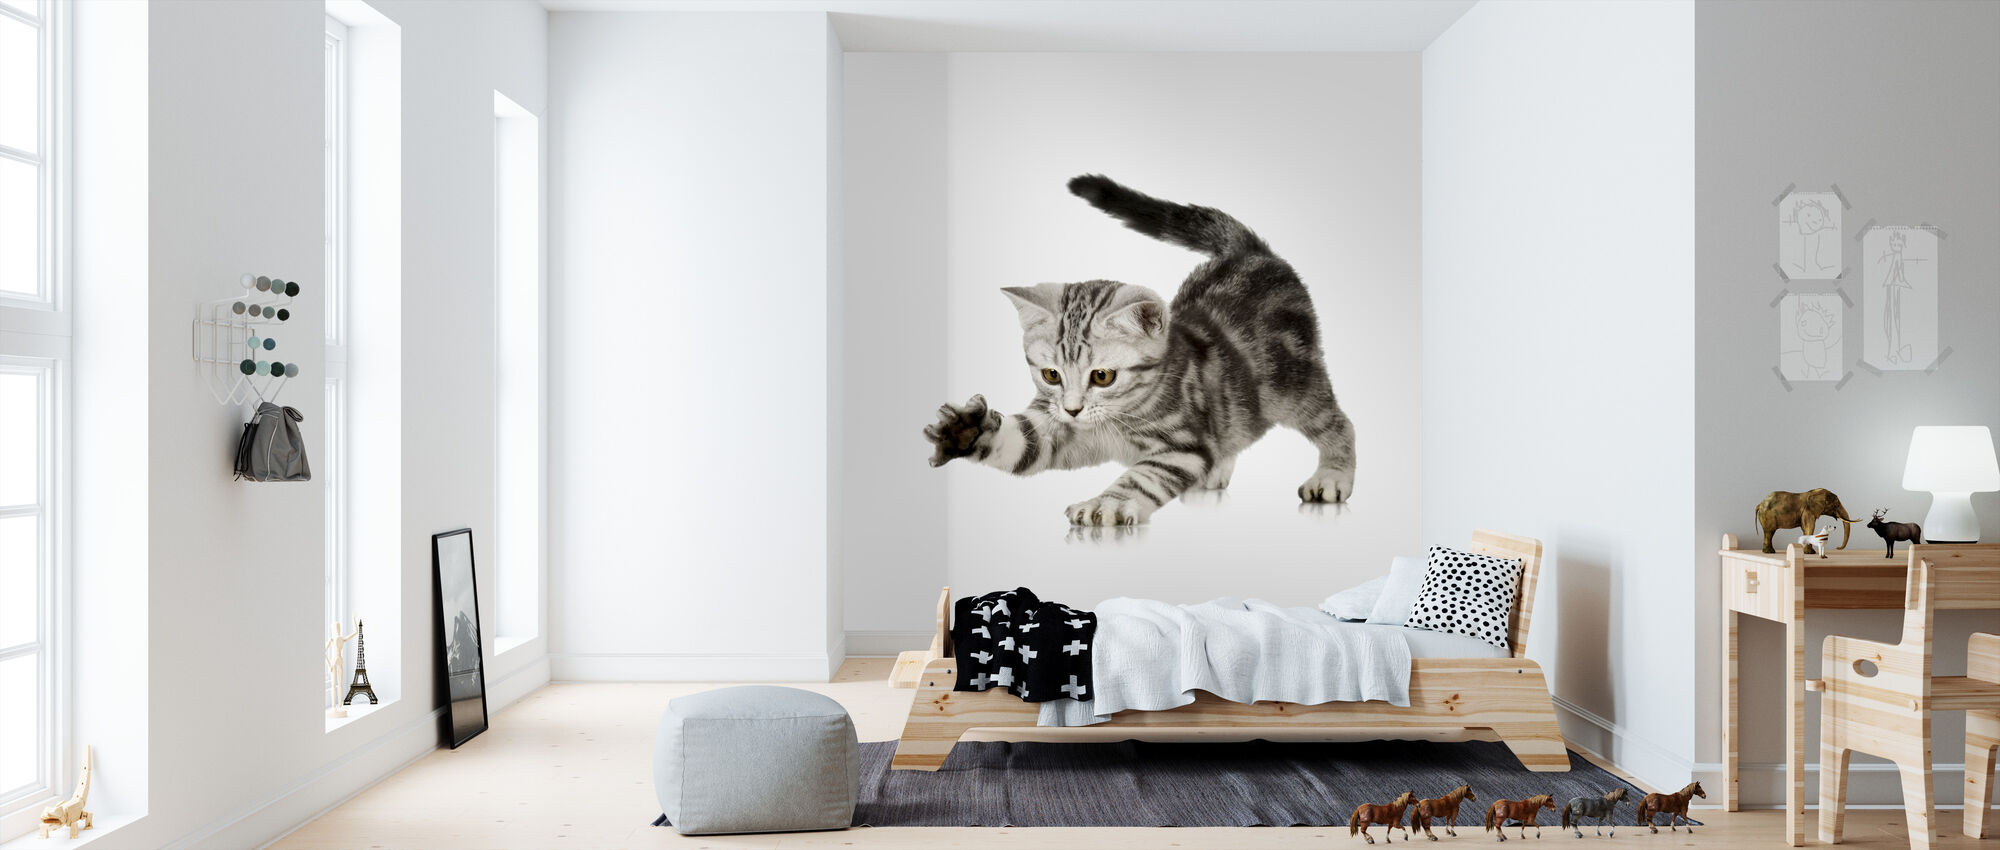 Grabbing - Wallpaper - Kids Room